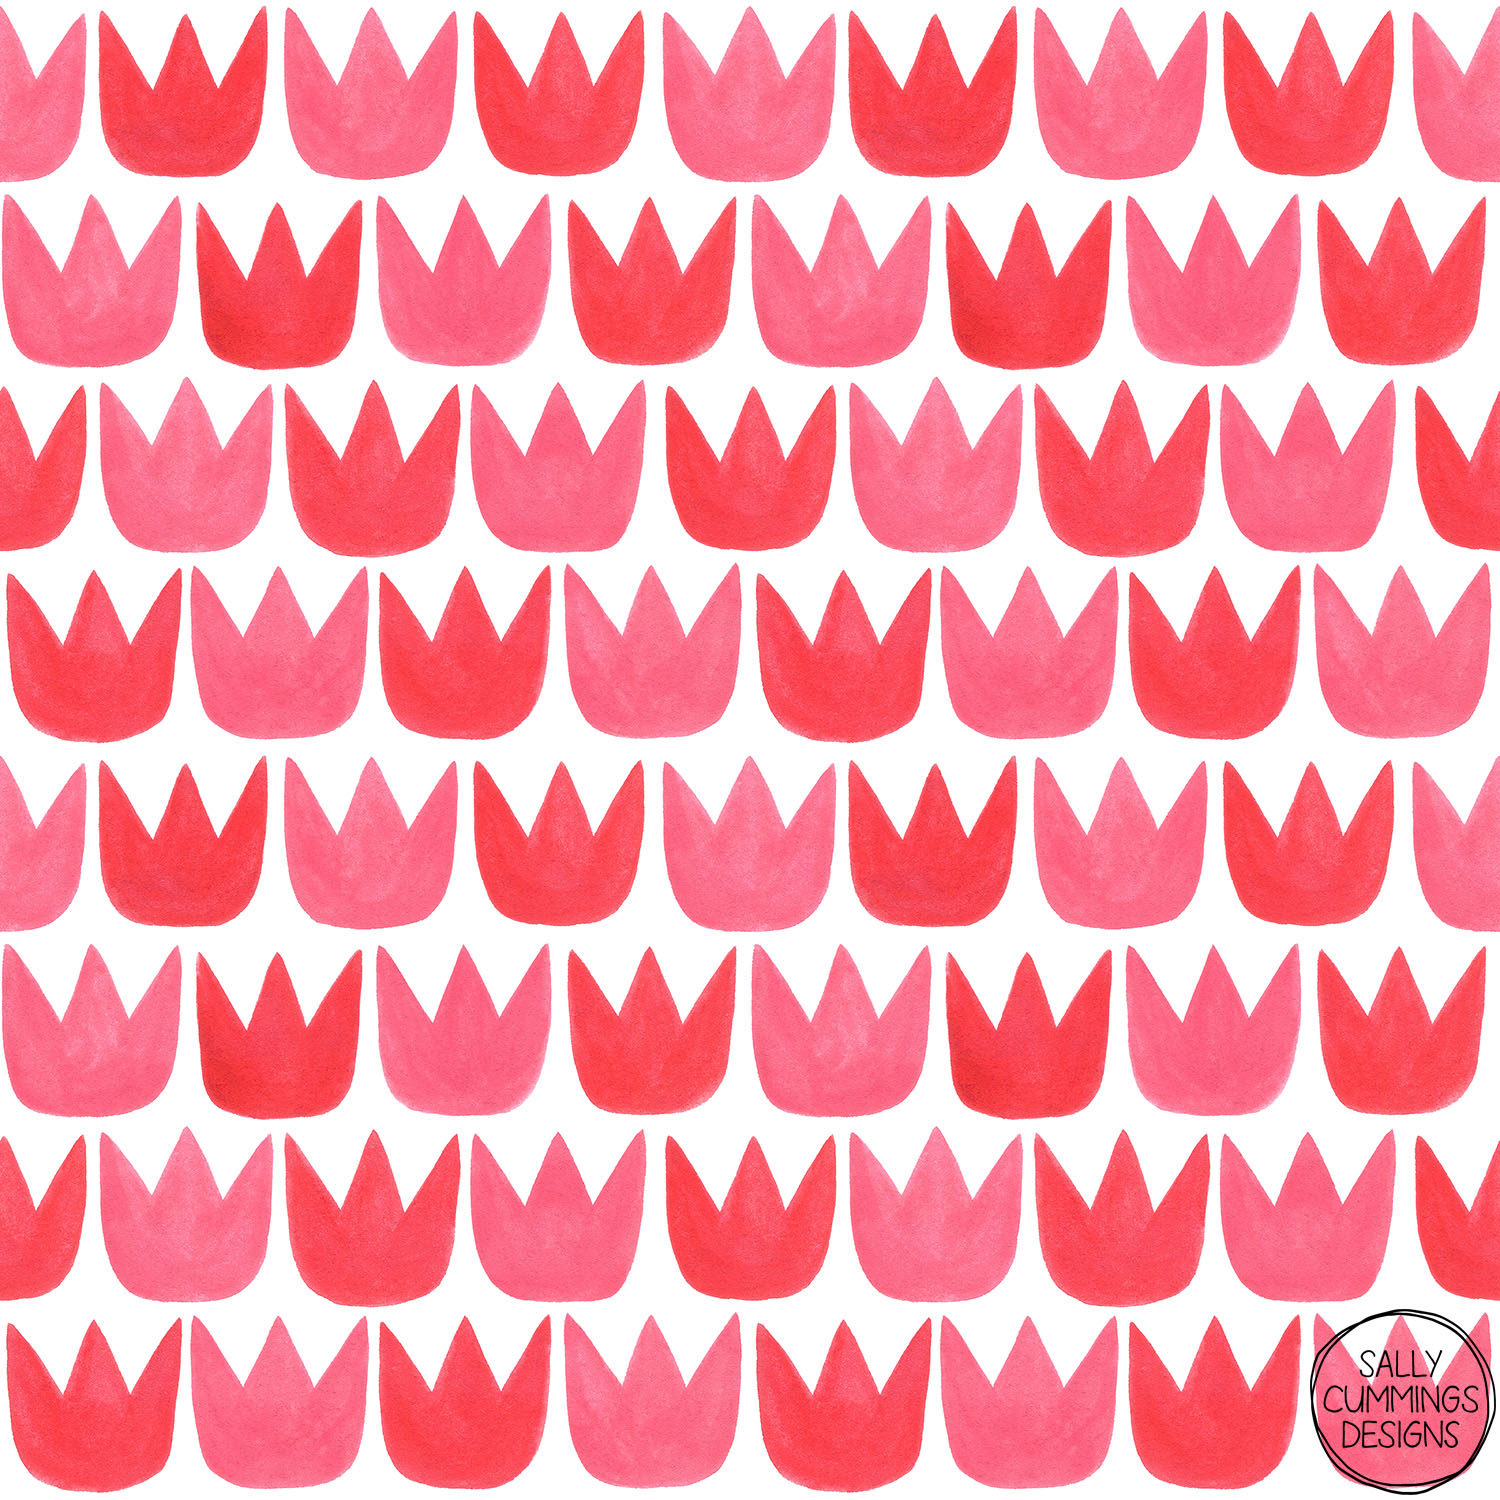 Sally Cummings Designs - Tiptoe Tulips Pattern